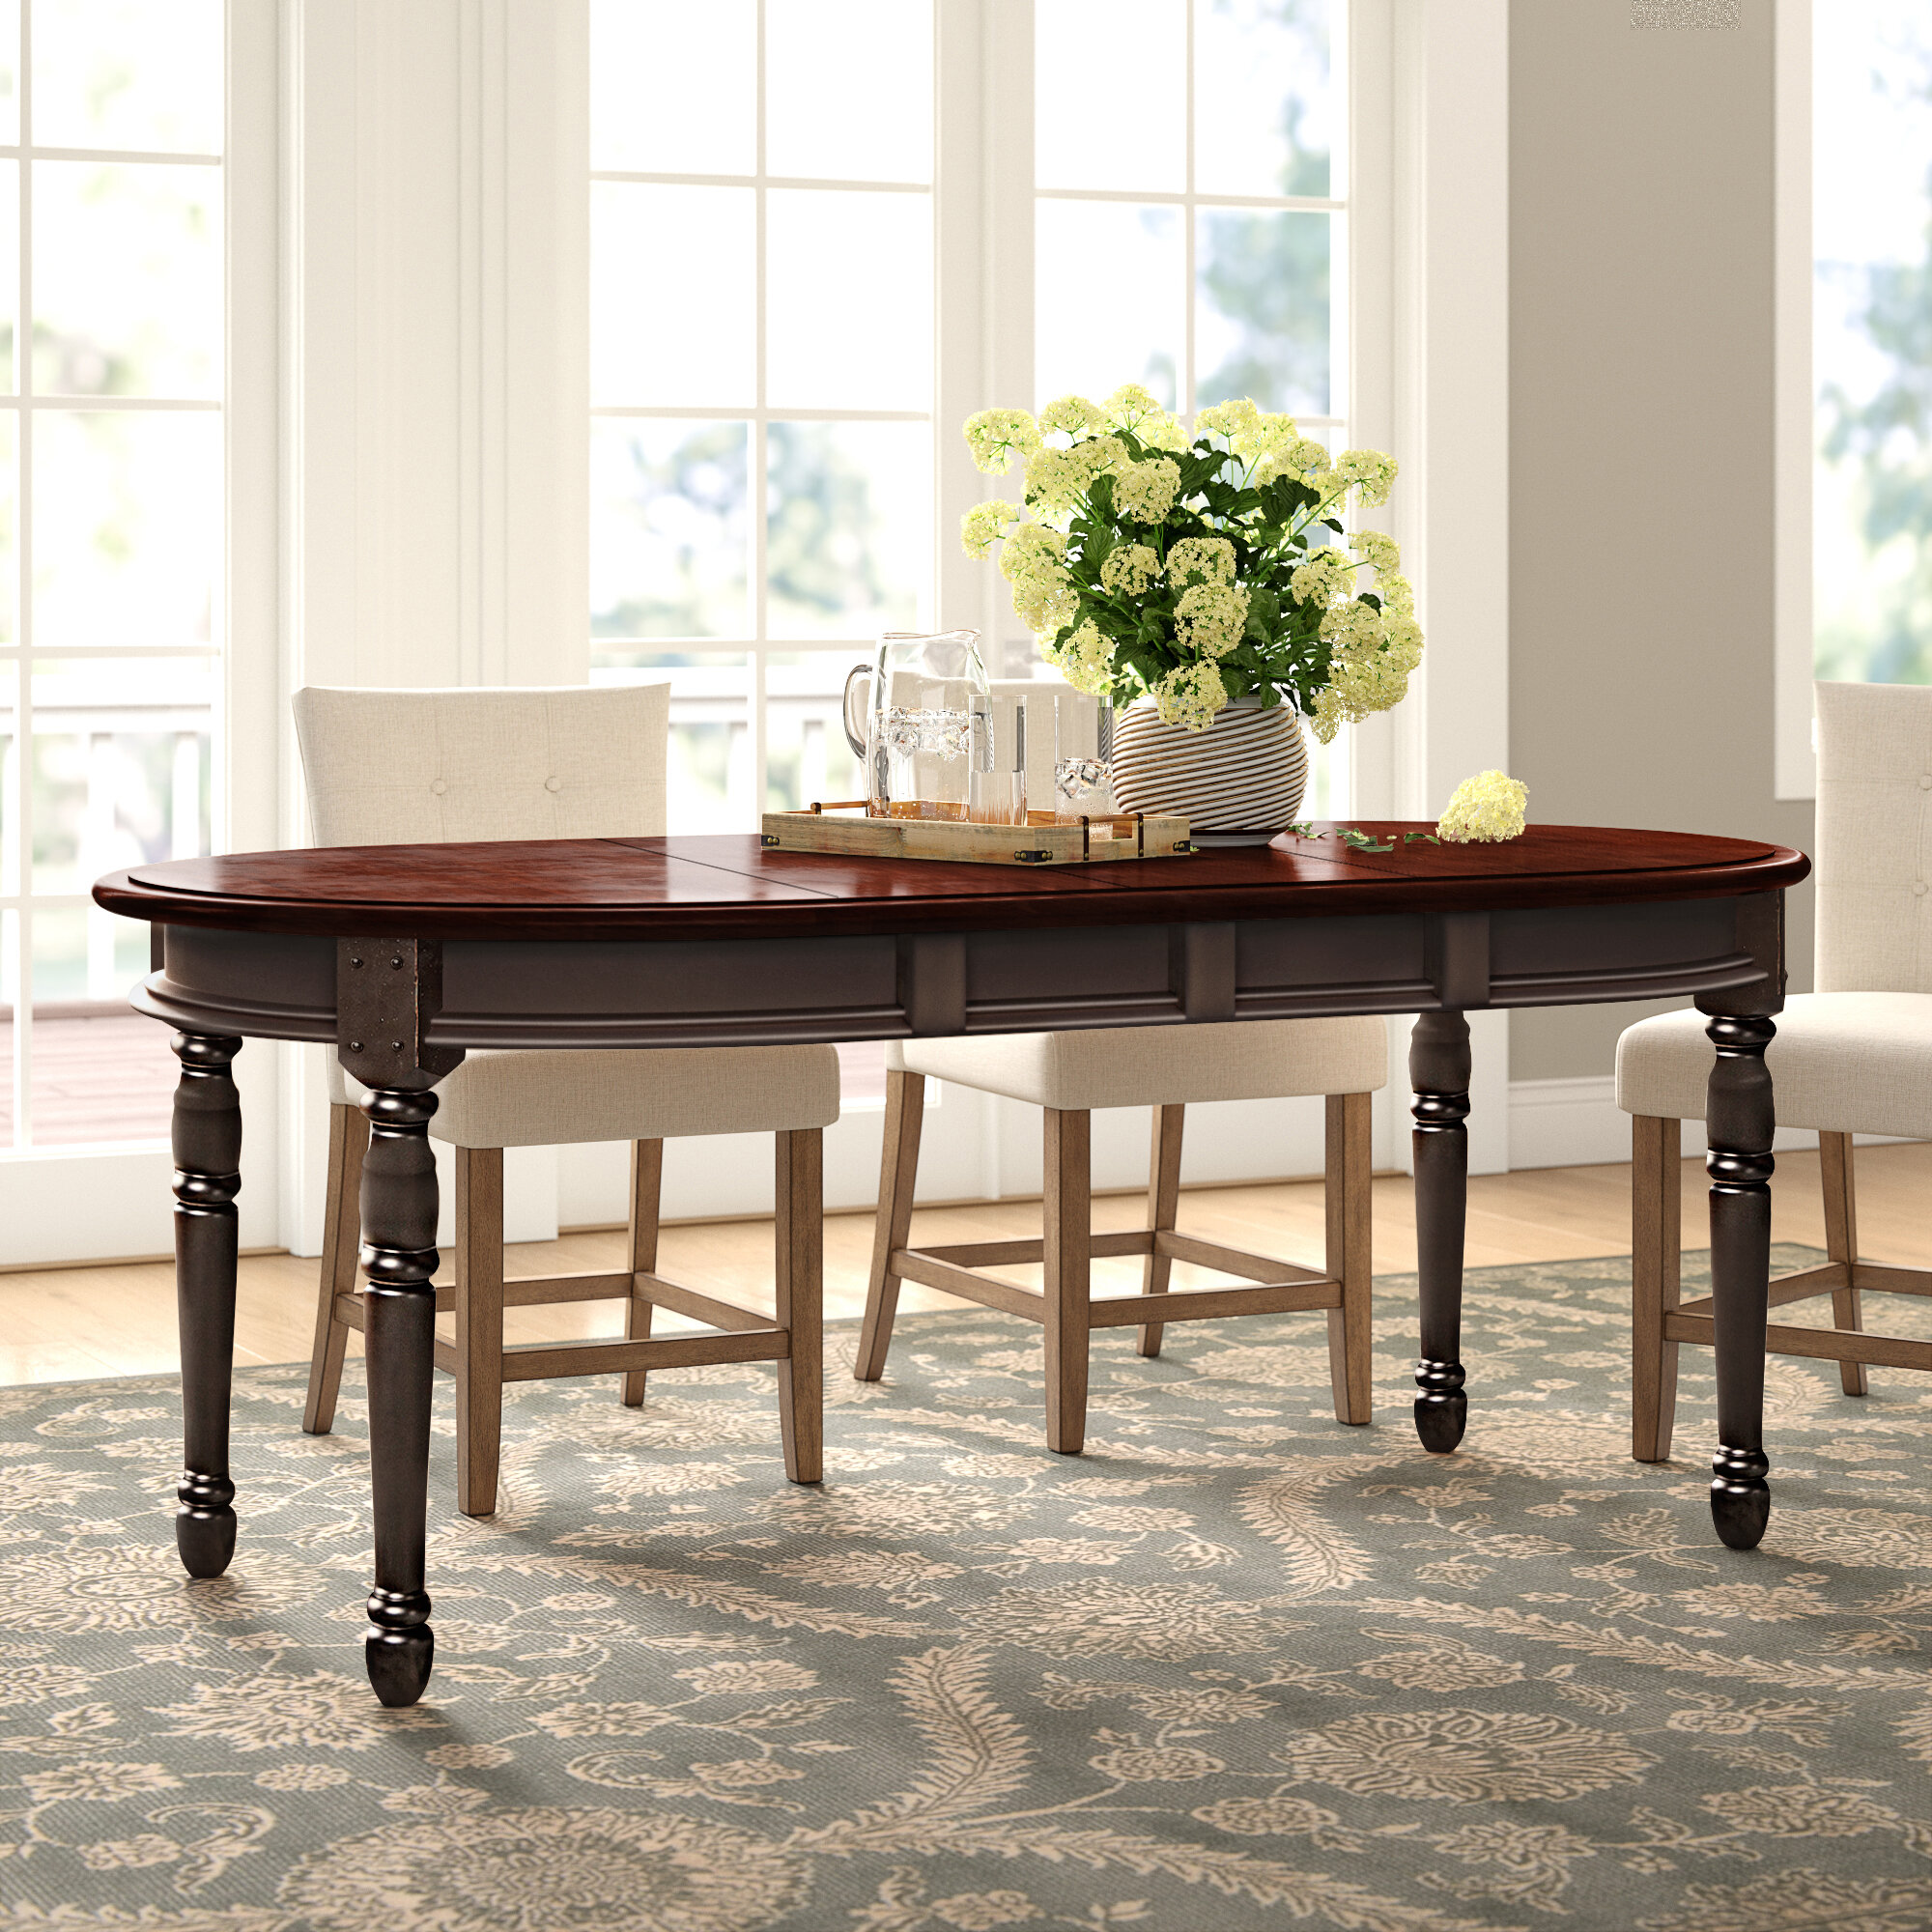 Laurel Foundry Modern Farmhouse Shelburne Extendable Solid Wood